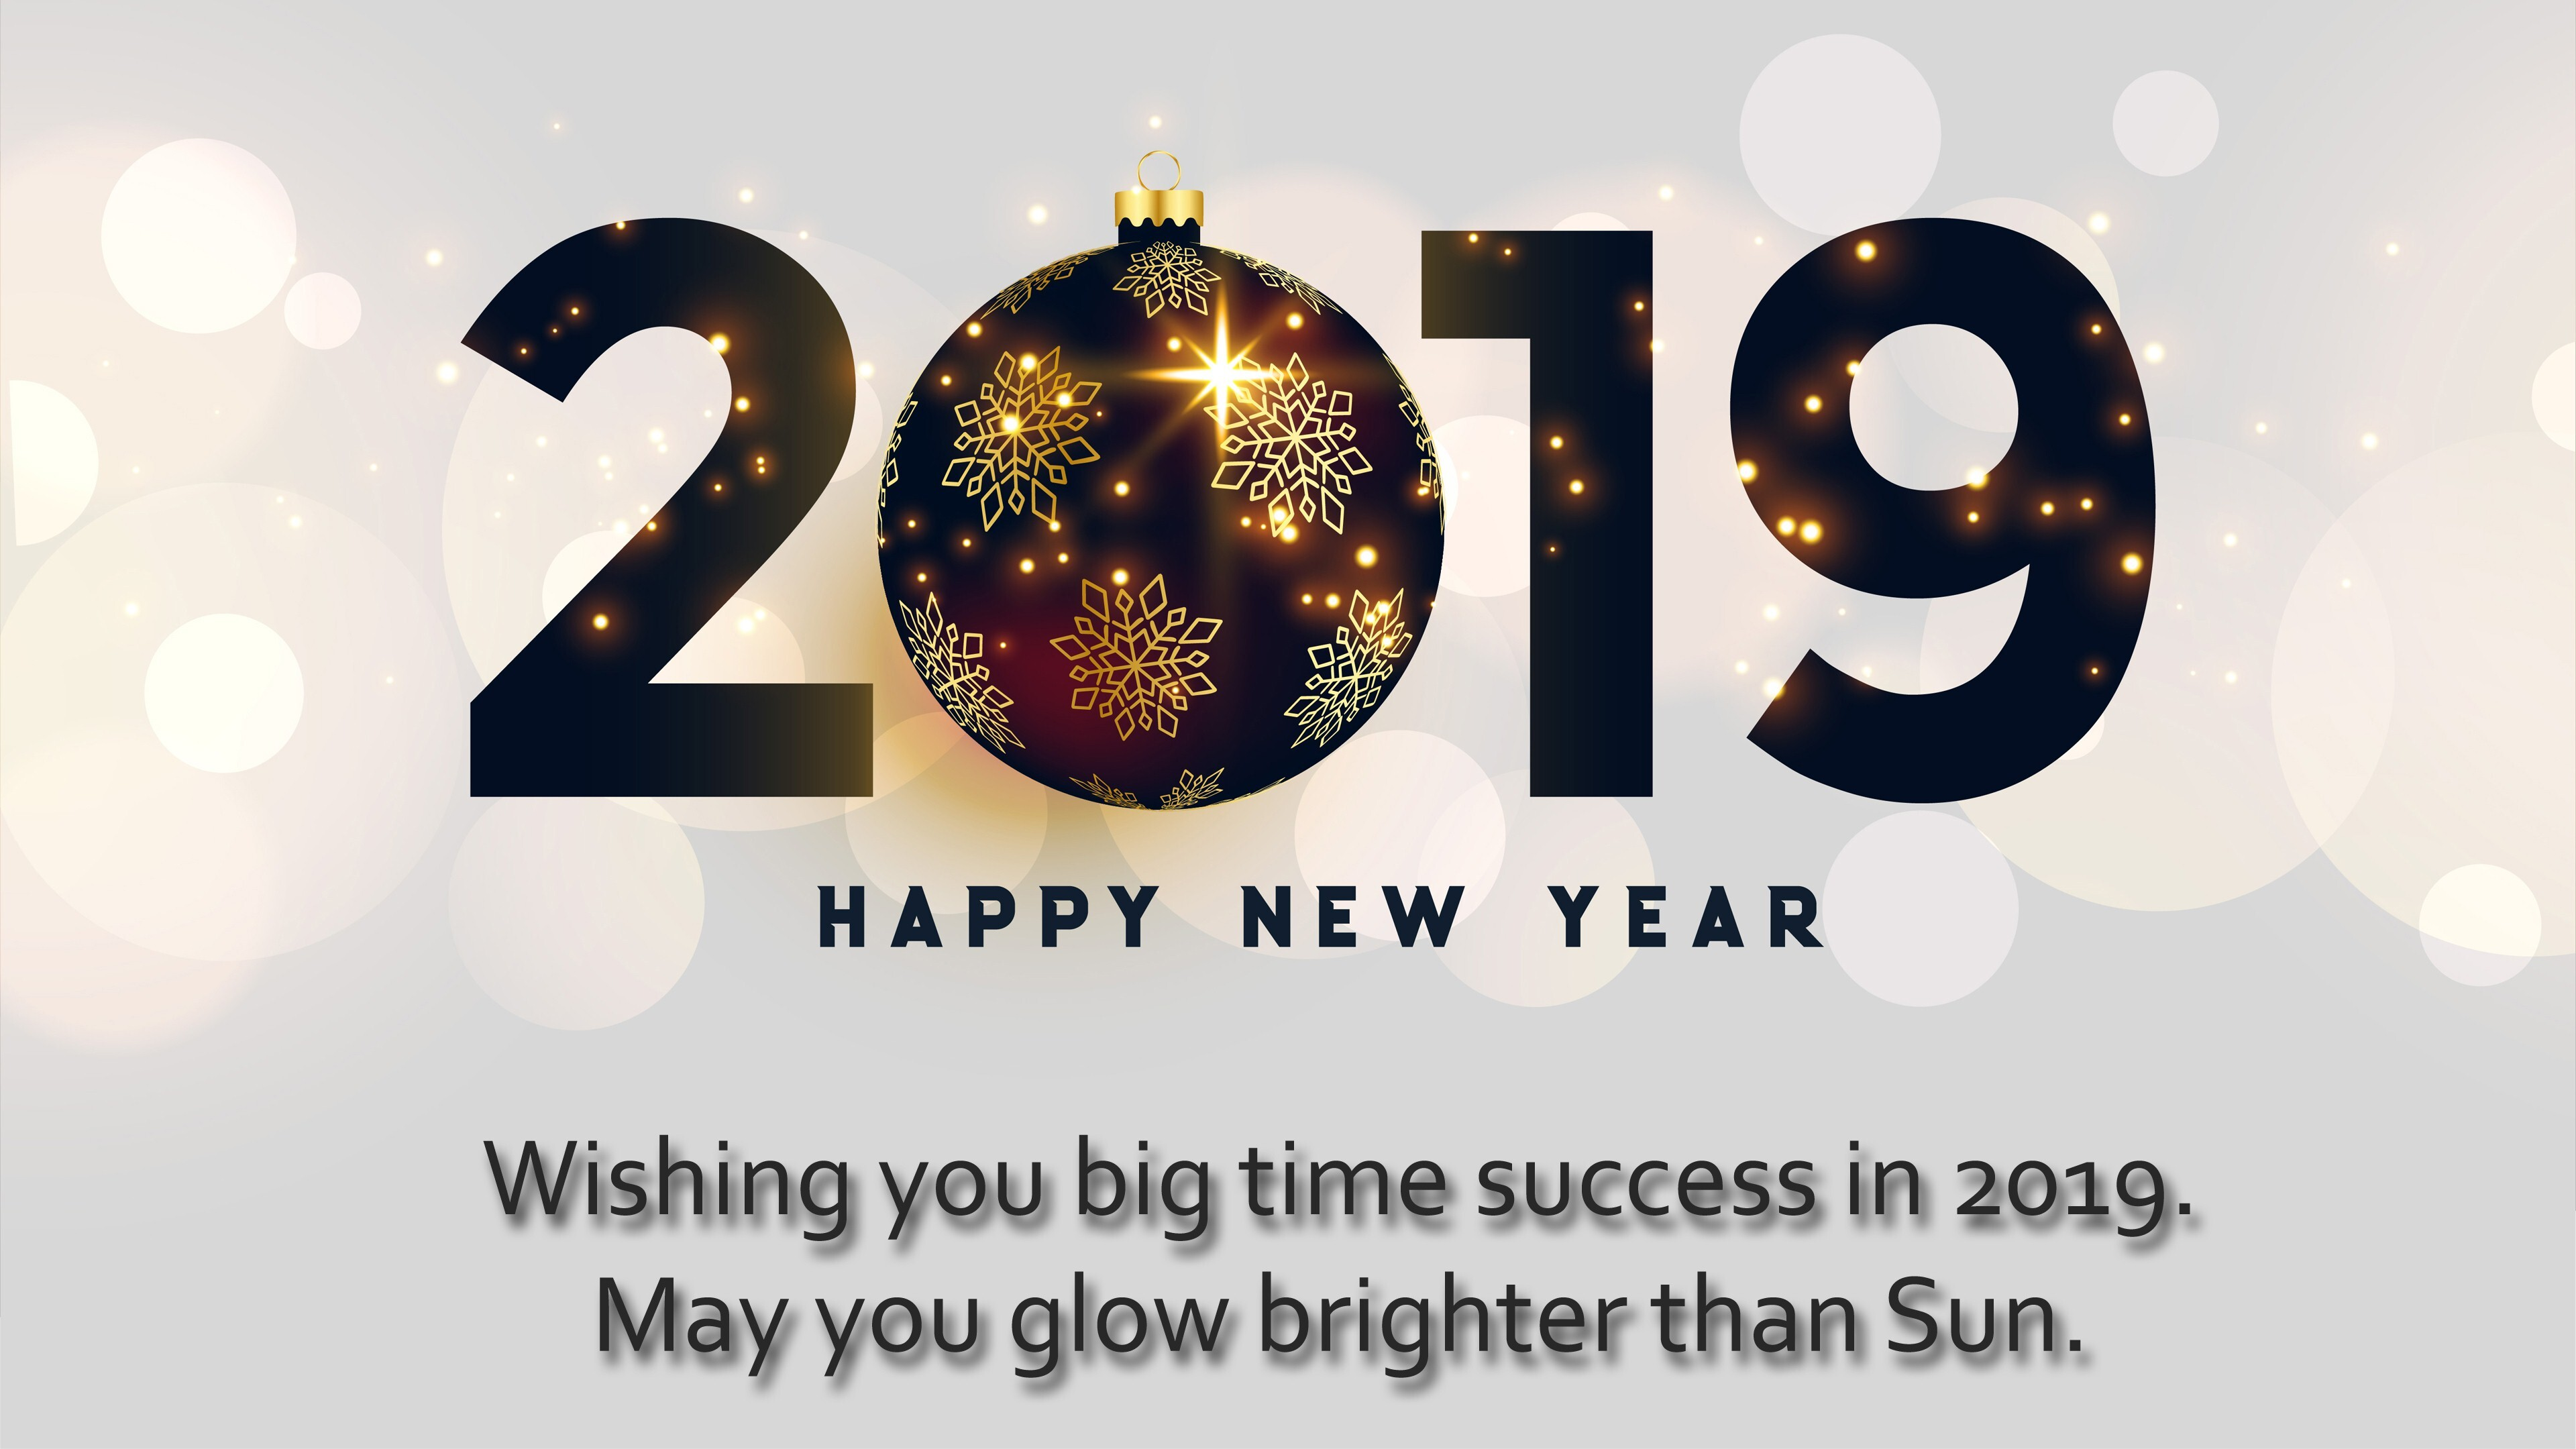 2019 Happy New Year Greeting Message 4K Wallpaper | HD ...